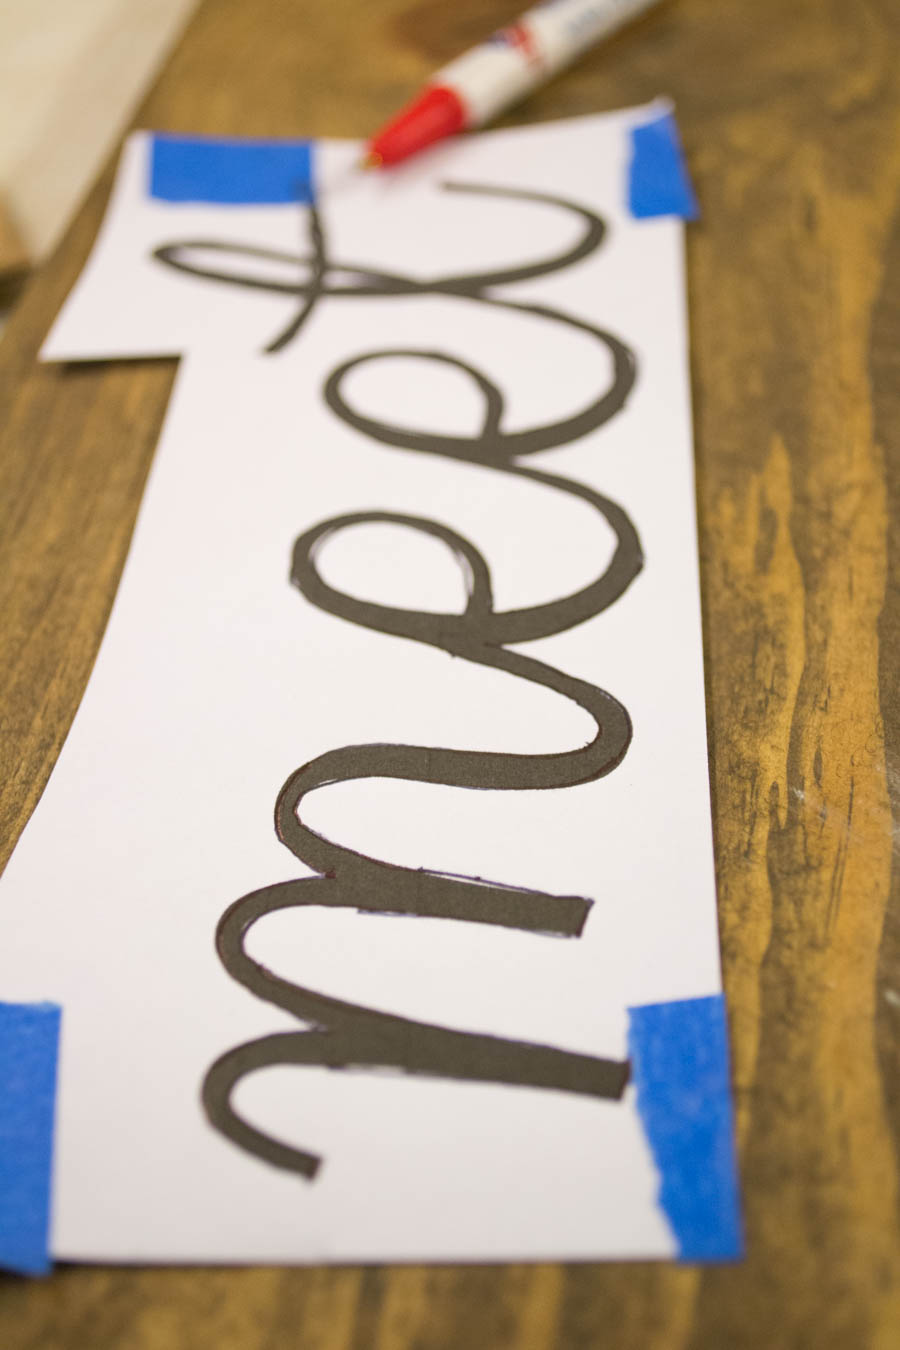 pen-tracing-paper-words-1-of-1